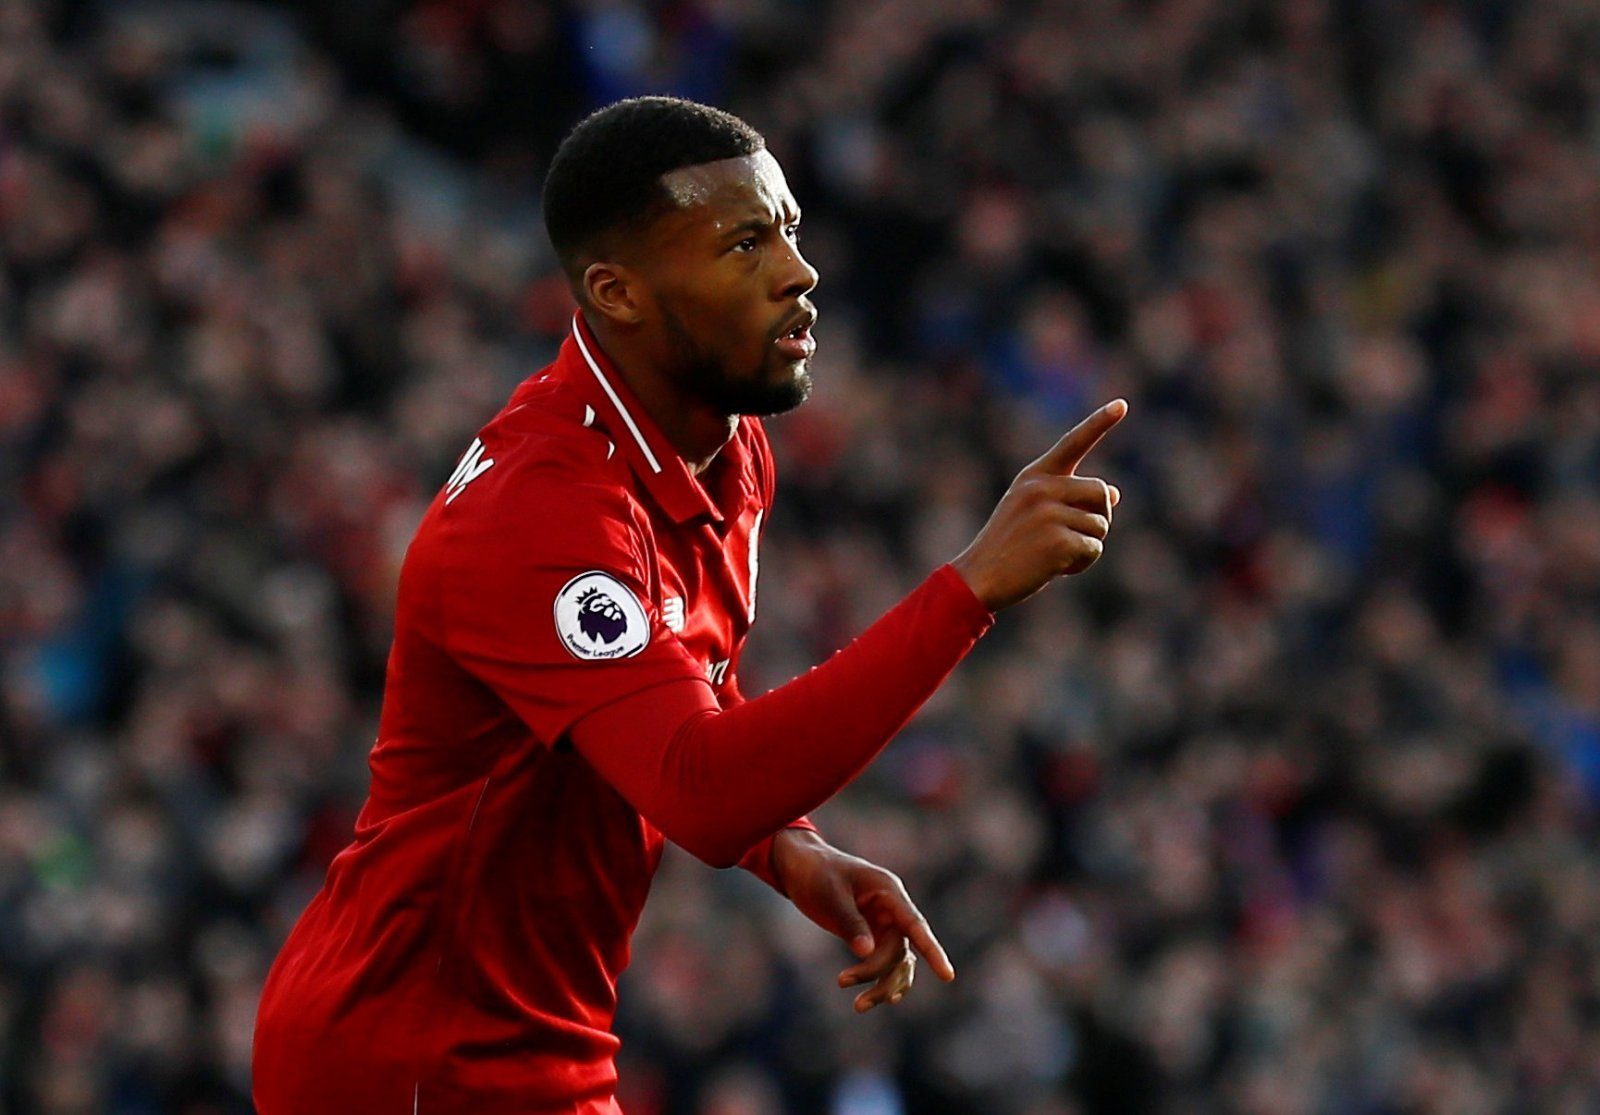 Unsung Hero: Aside from his goal, Liverpool's Georginio Wijnaldum also got through plenty of graft against Everton